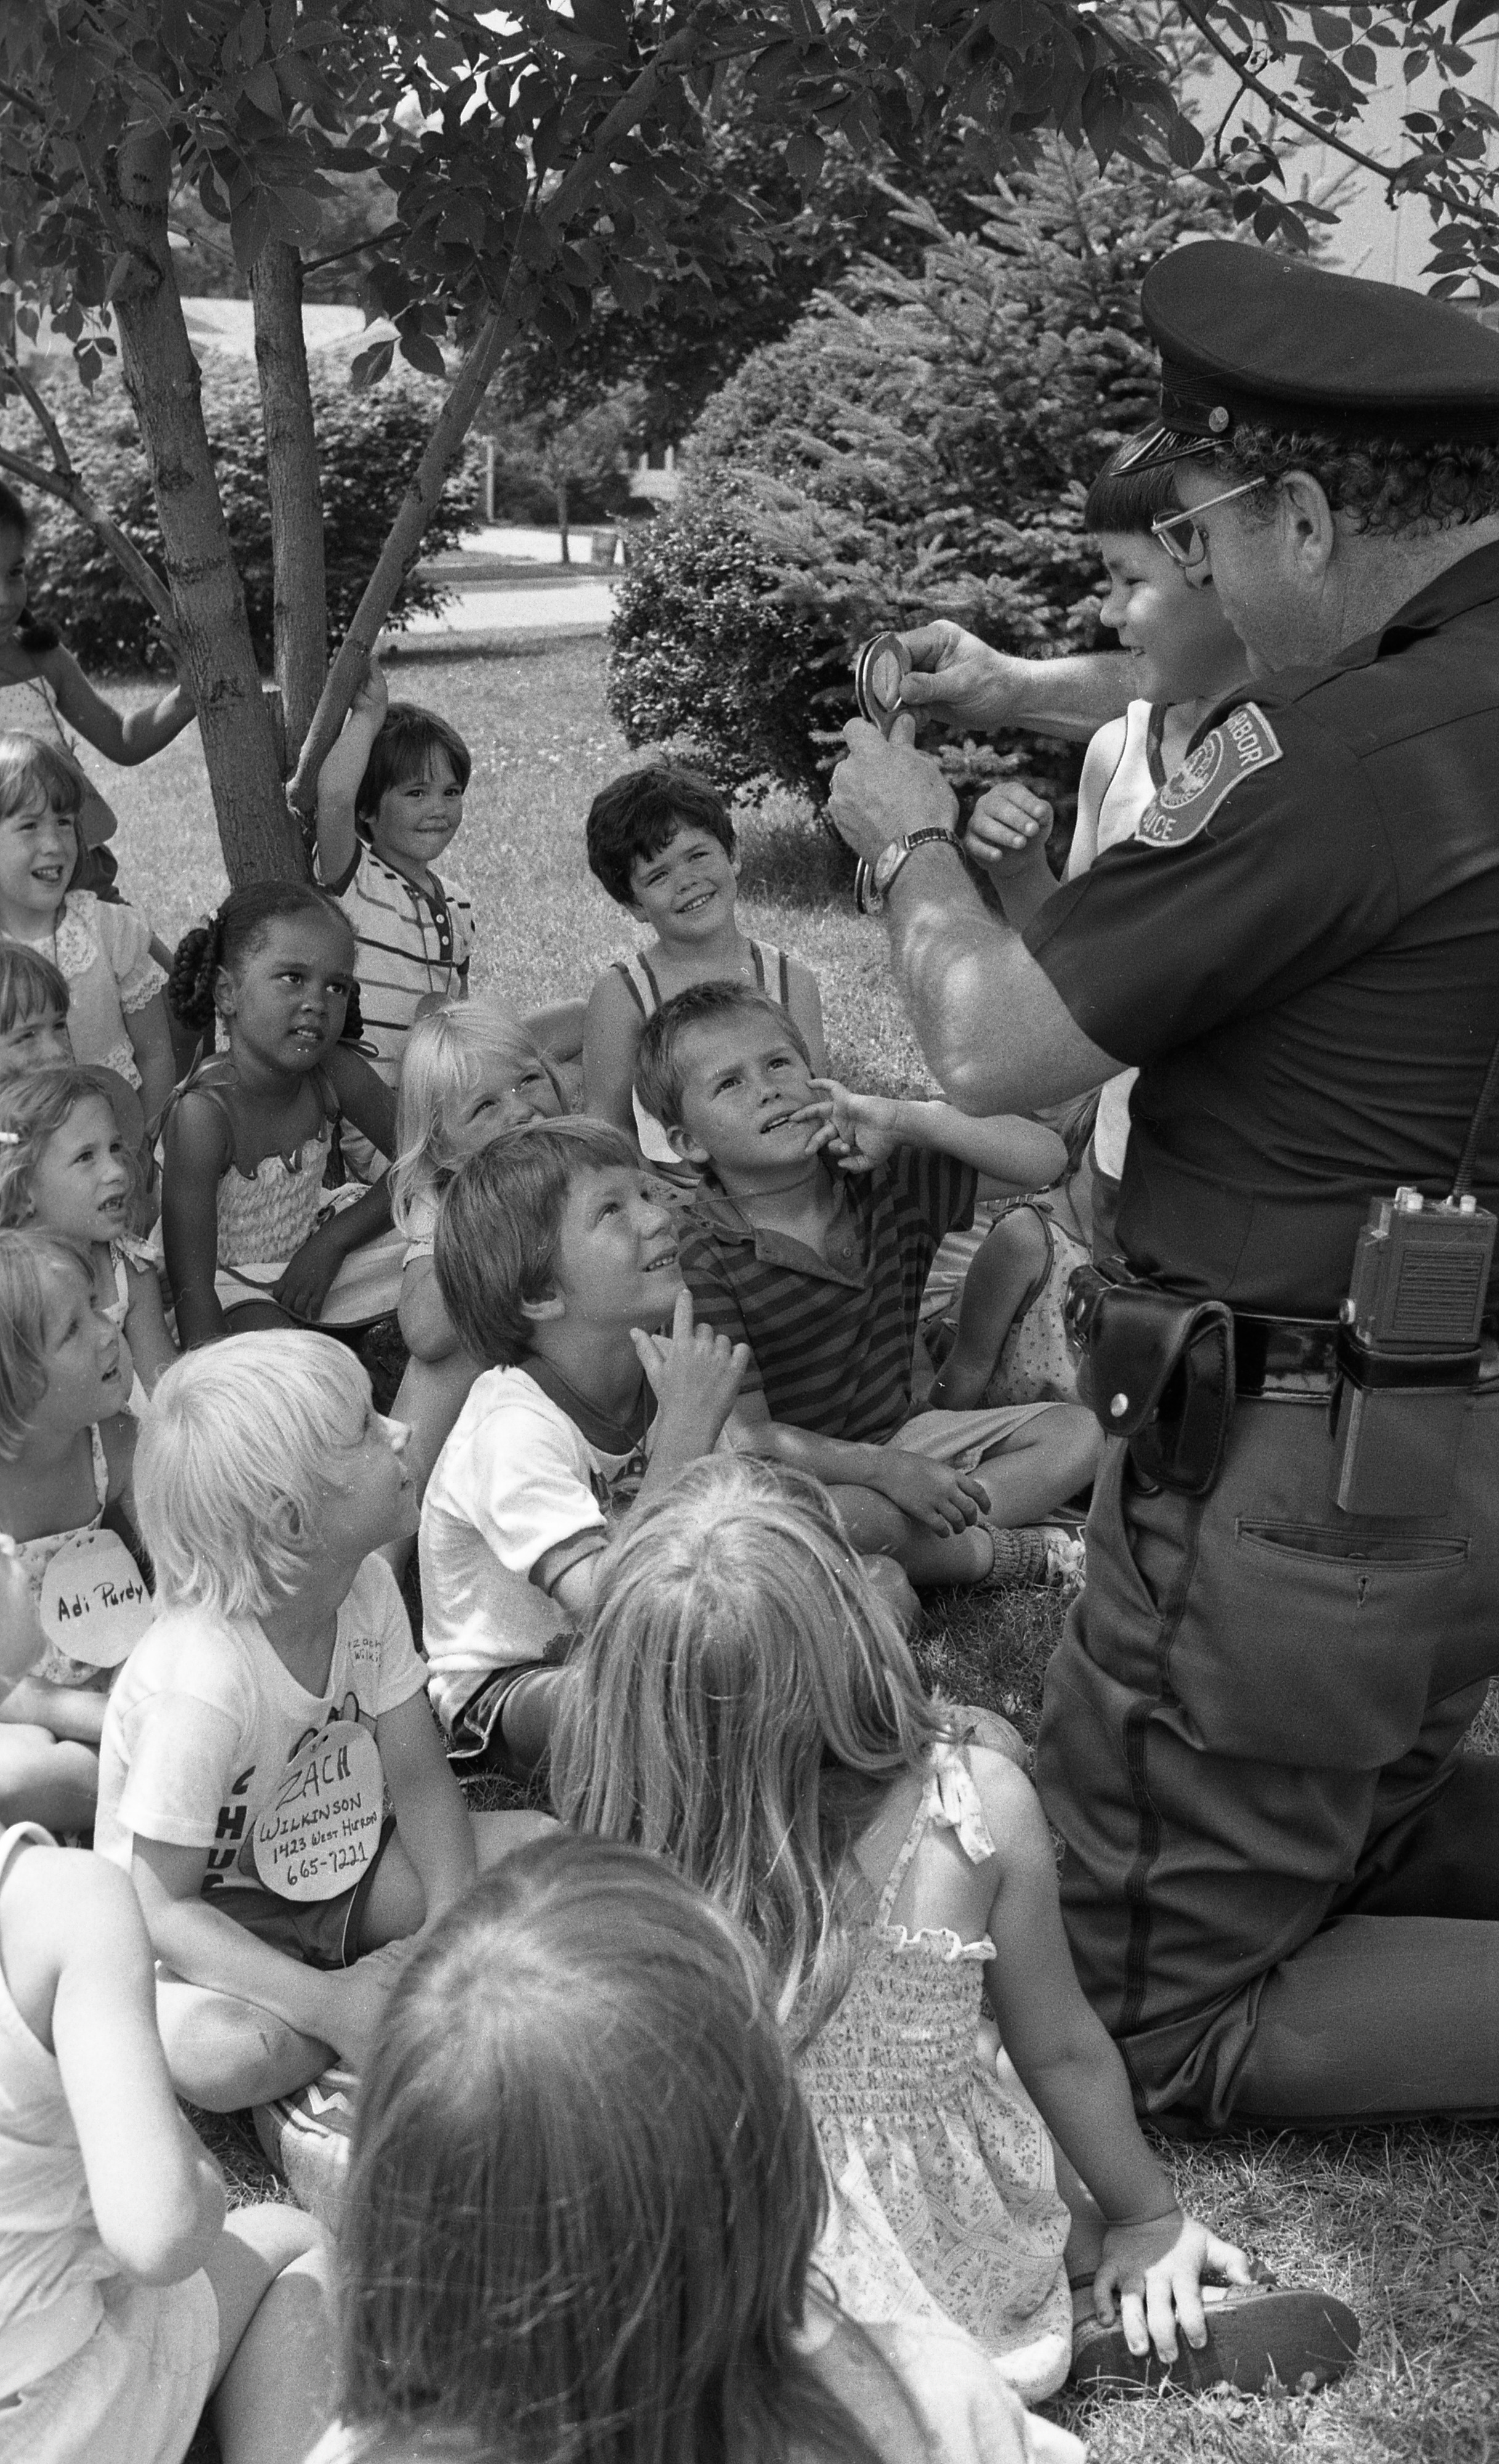 Ann Arbor Police Officer James Patrick Nolan Demonstrates Handcuffs at Safety Town, July 1982 image